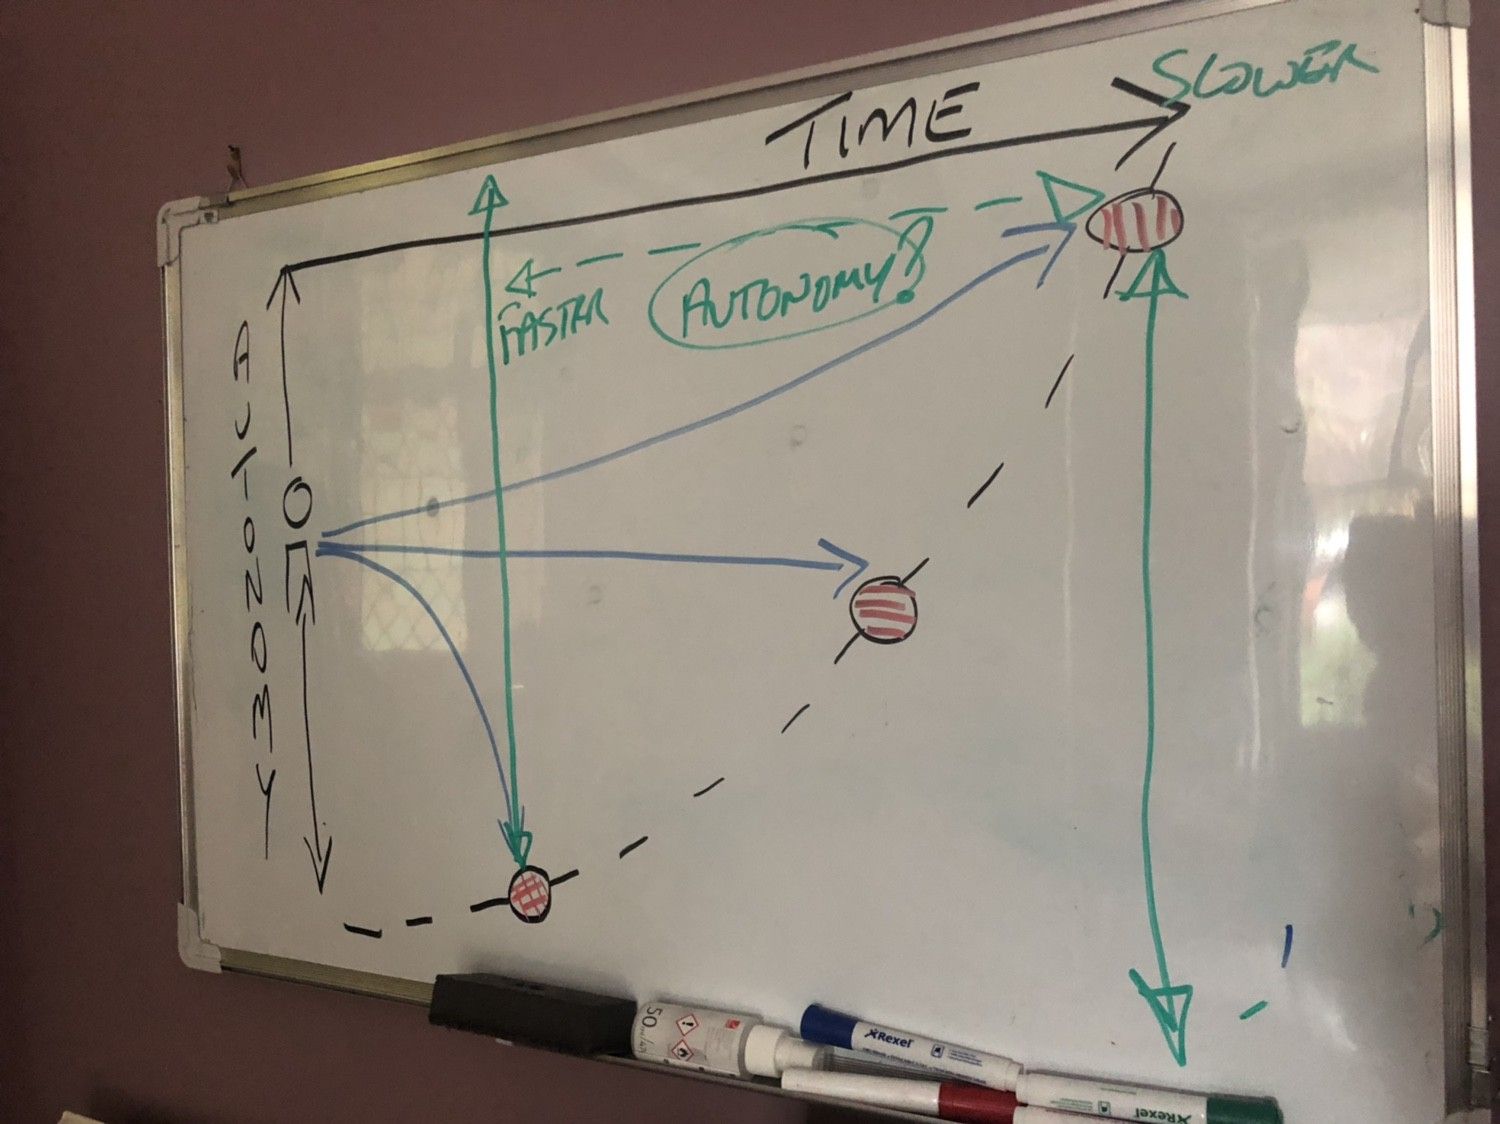 Rough sketch of diagram or graph of how automony and agency play out over time